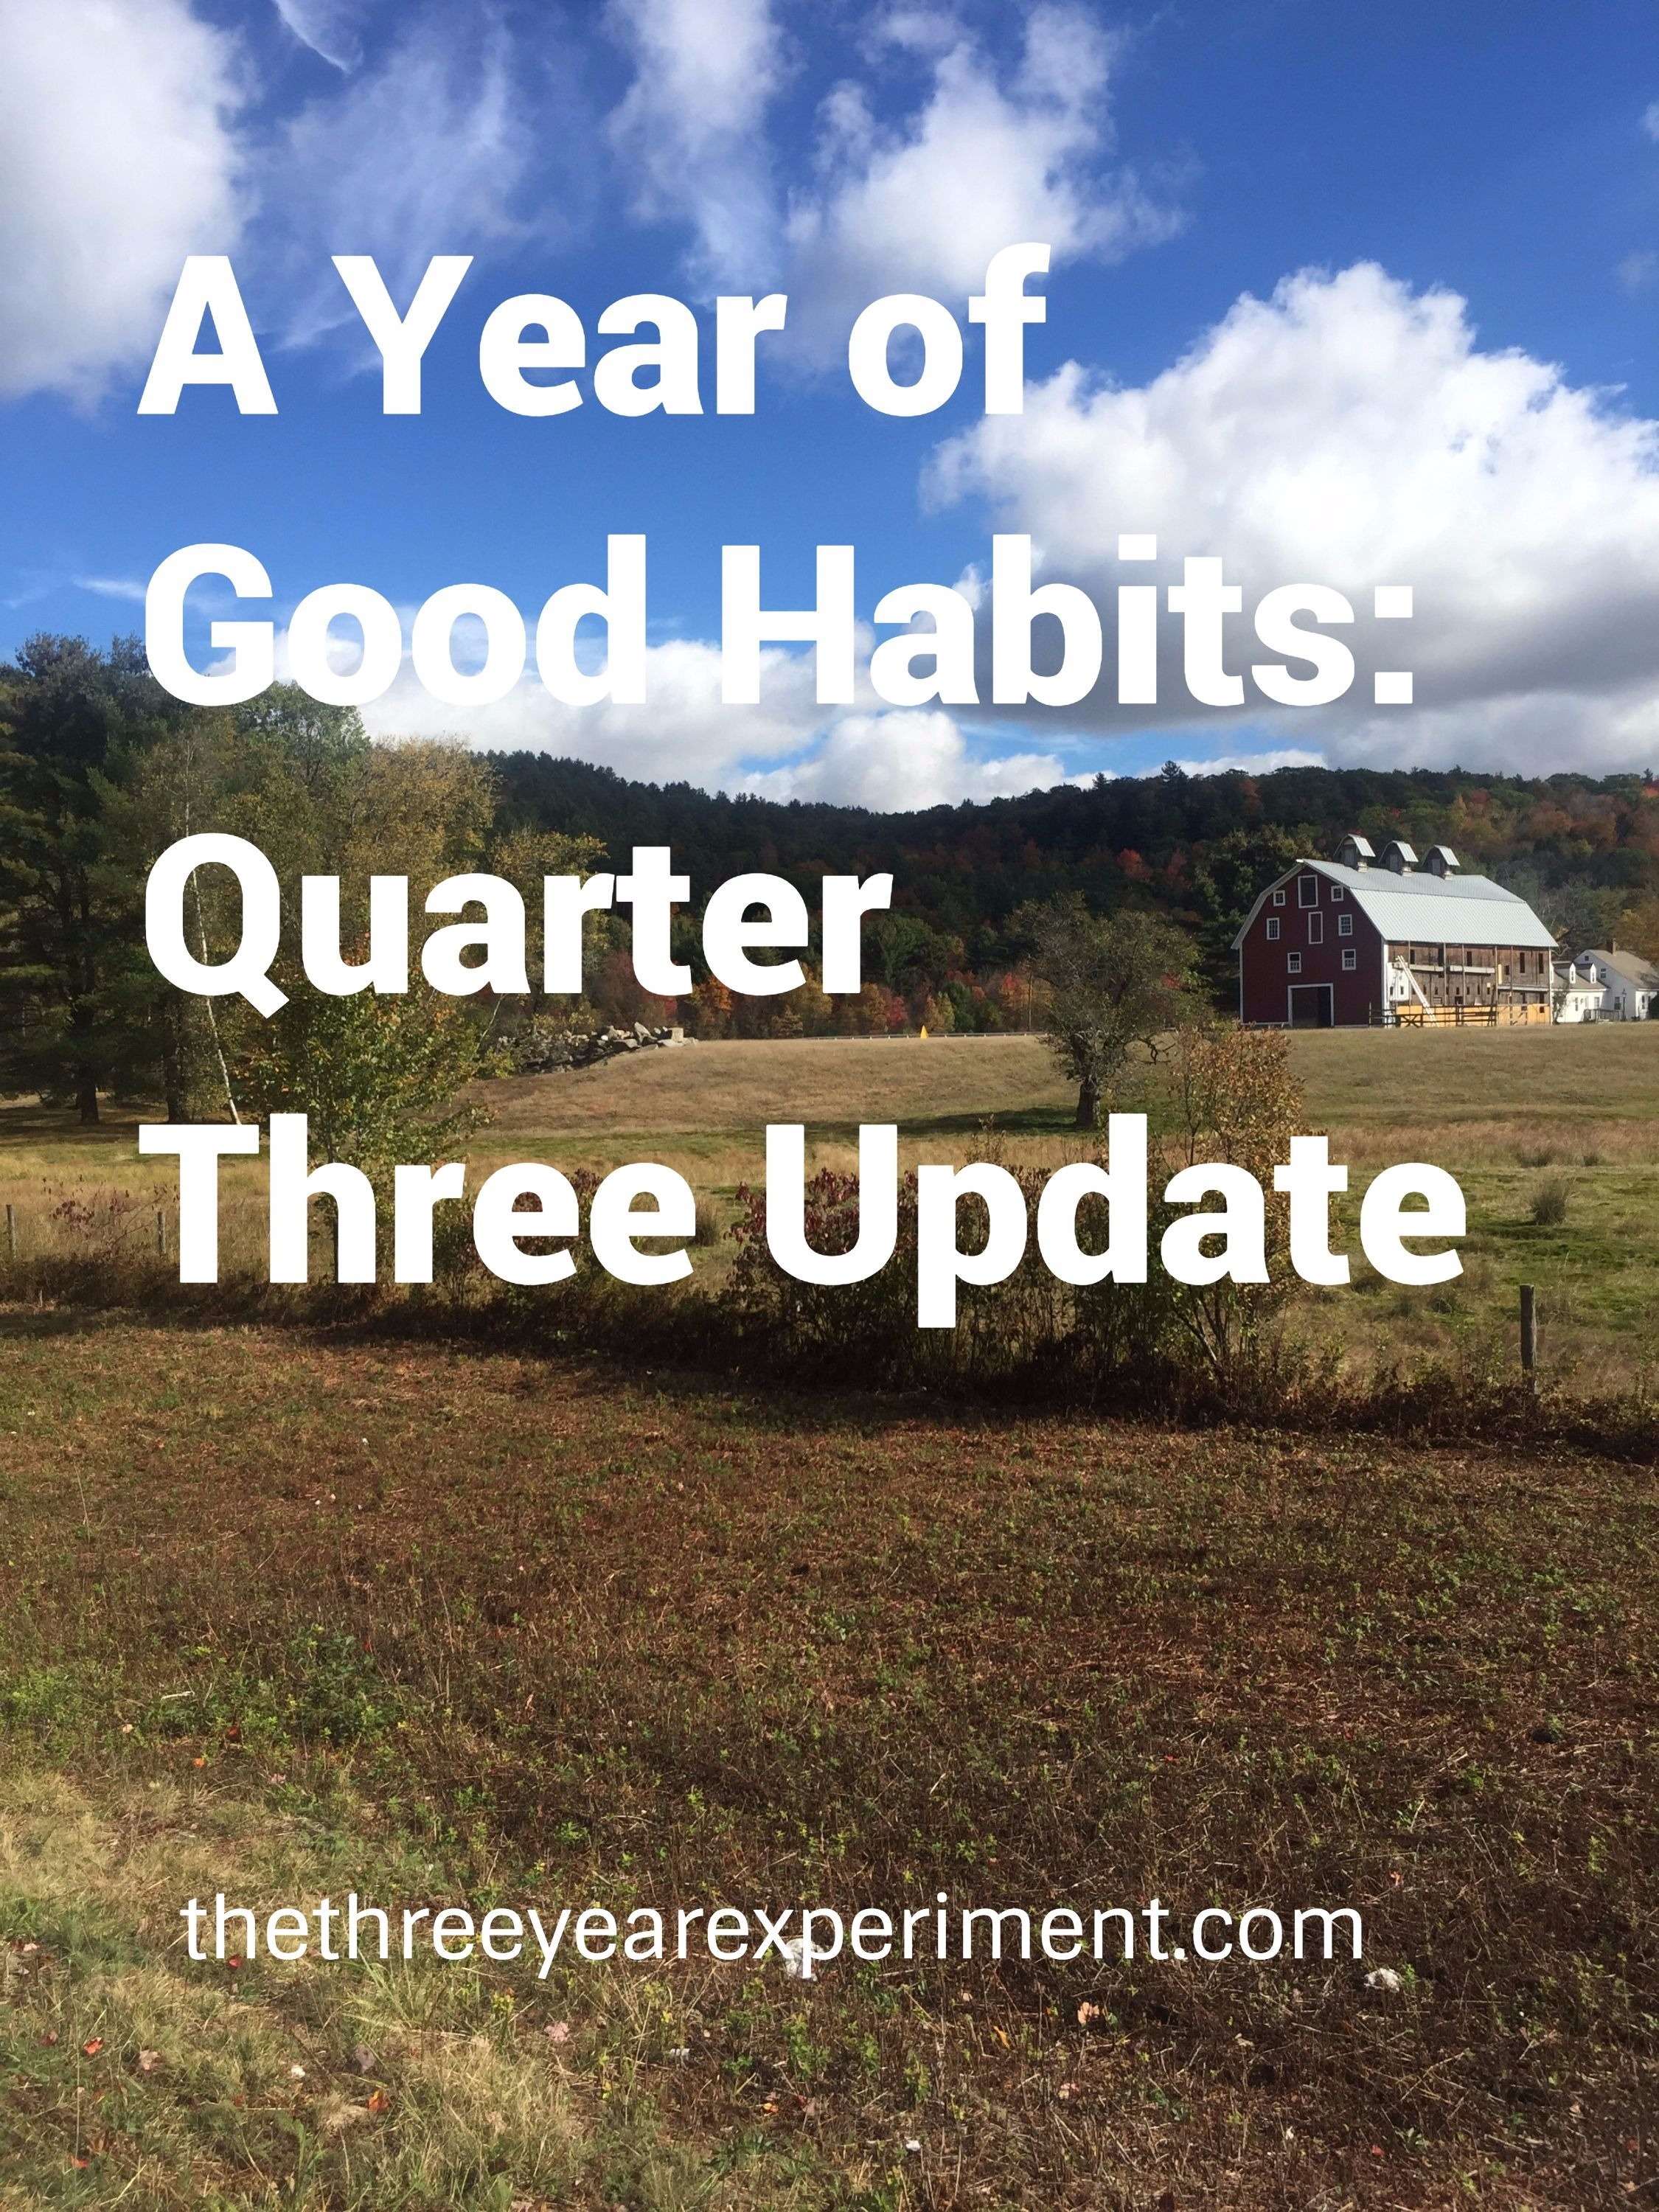 A Year of Good Habits Quarter Three Update: www.thethreeyearexperiment.com